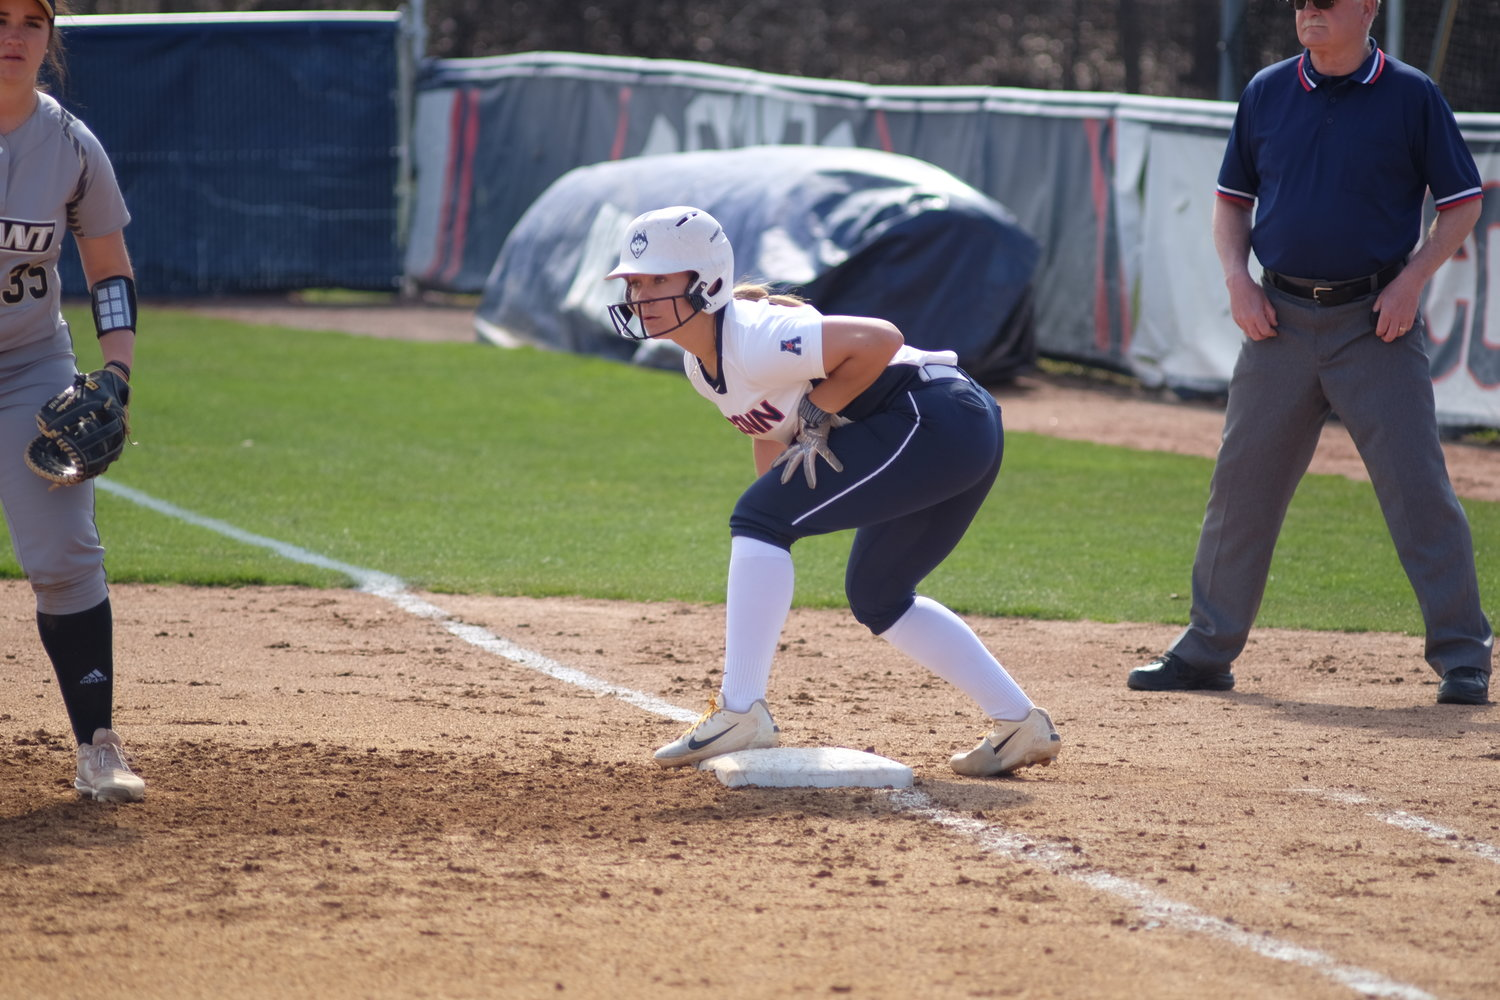 Junior Carli Cutler stands on first base during a home game at Burrill Family Field (Nicholas Hampton/The Daily Campus)